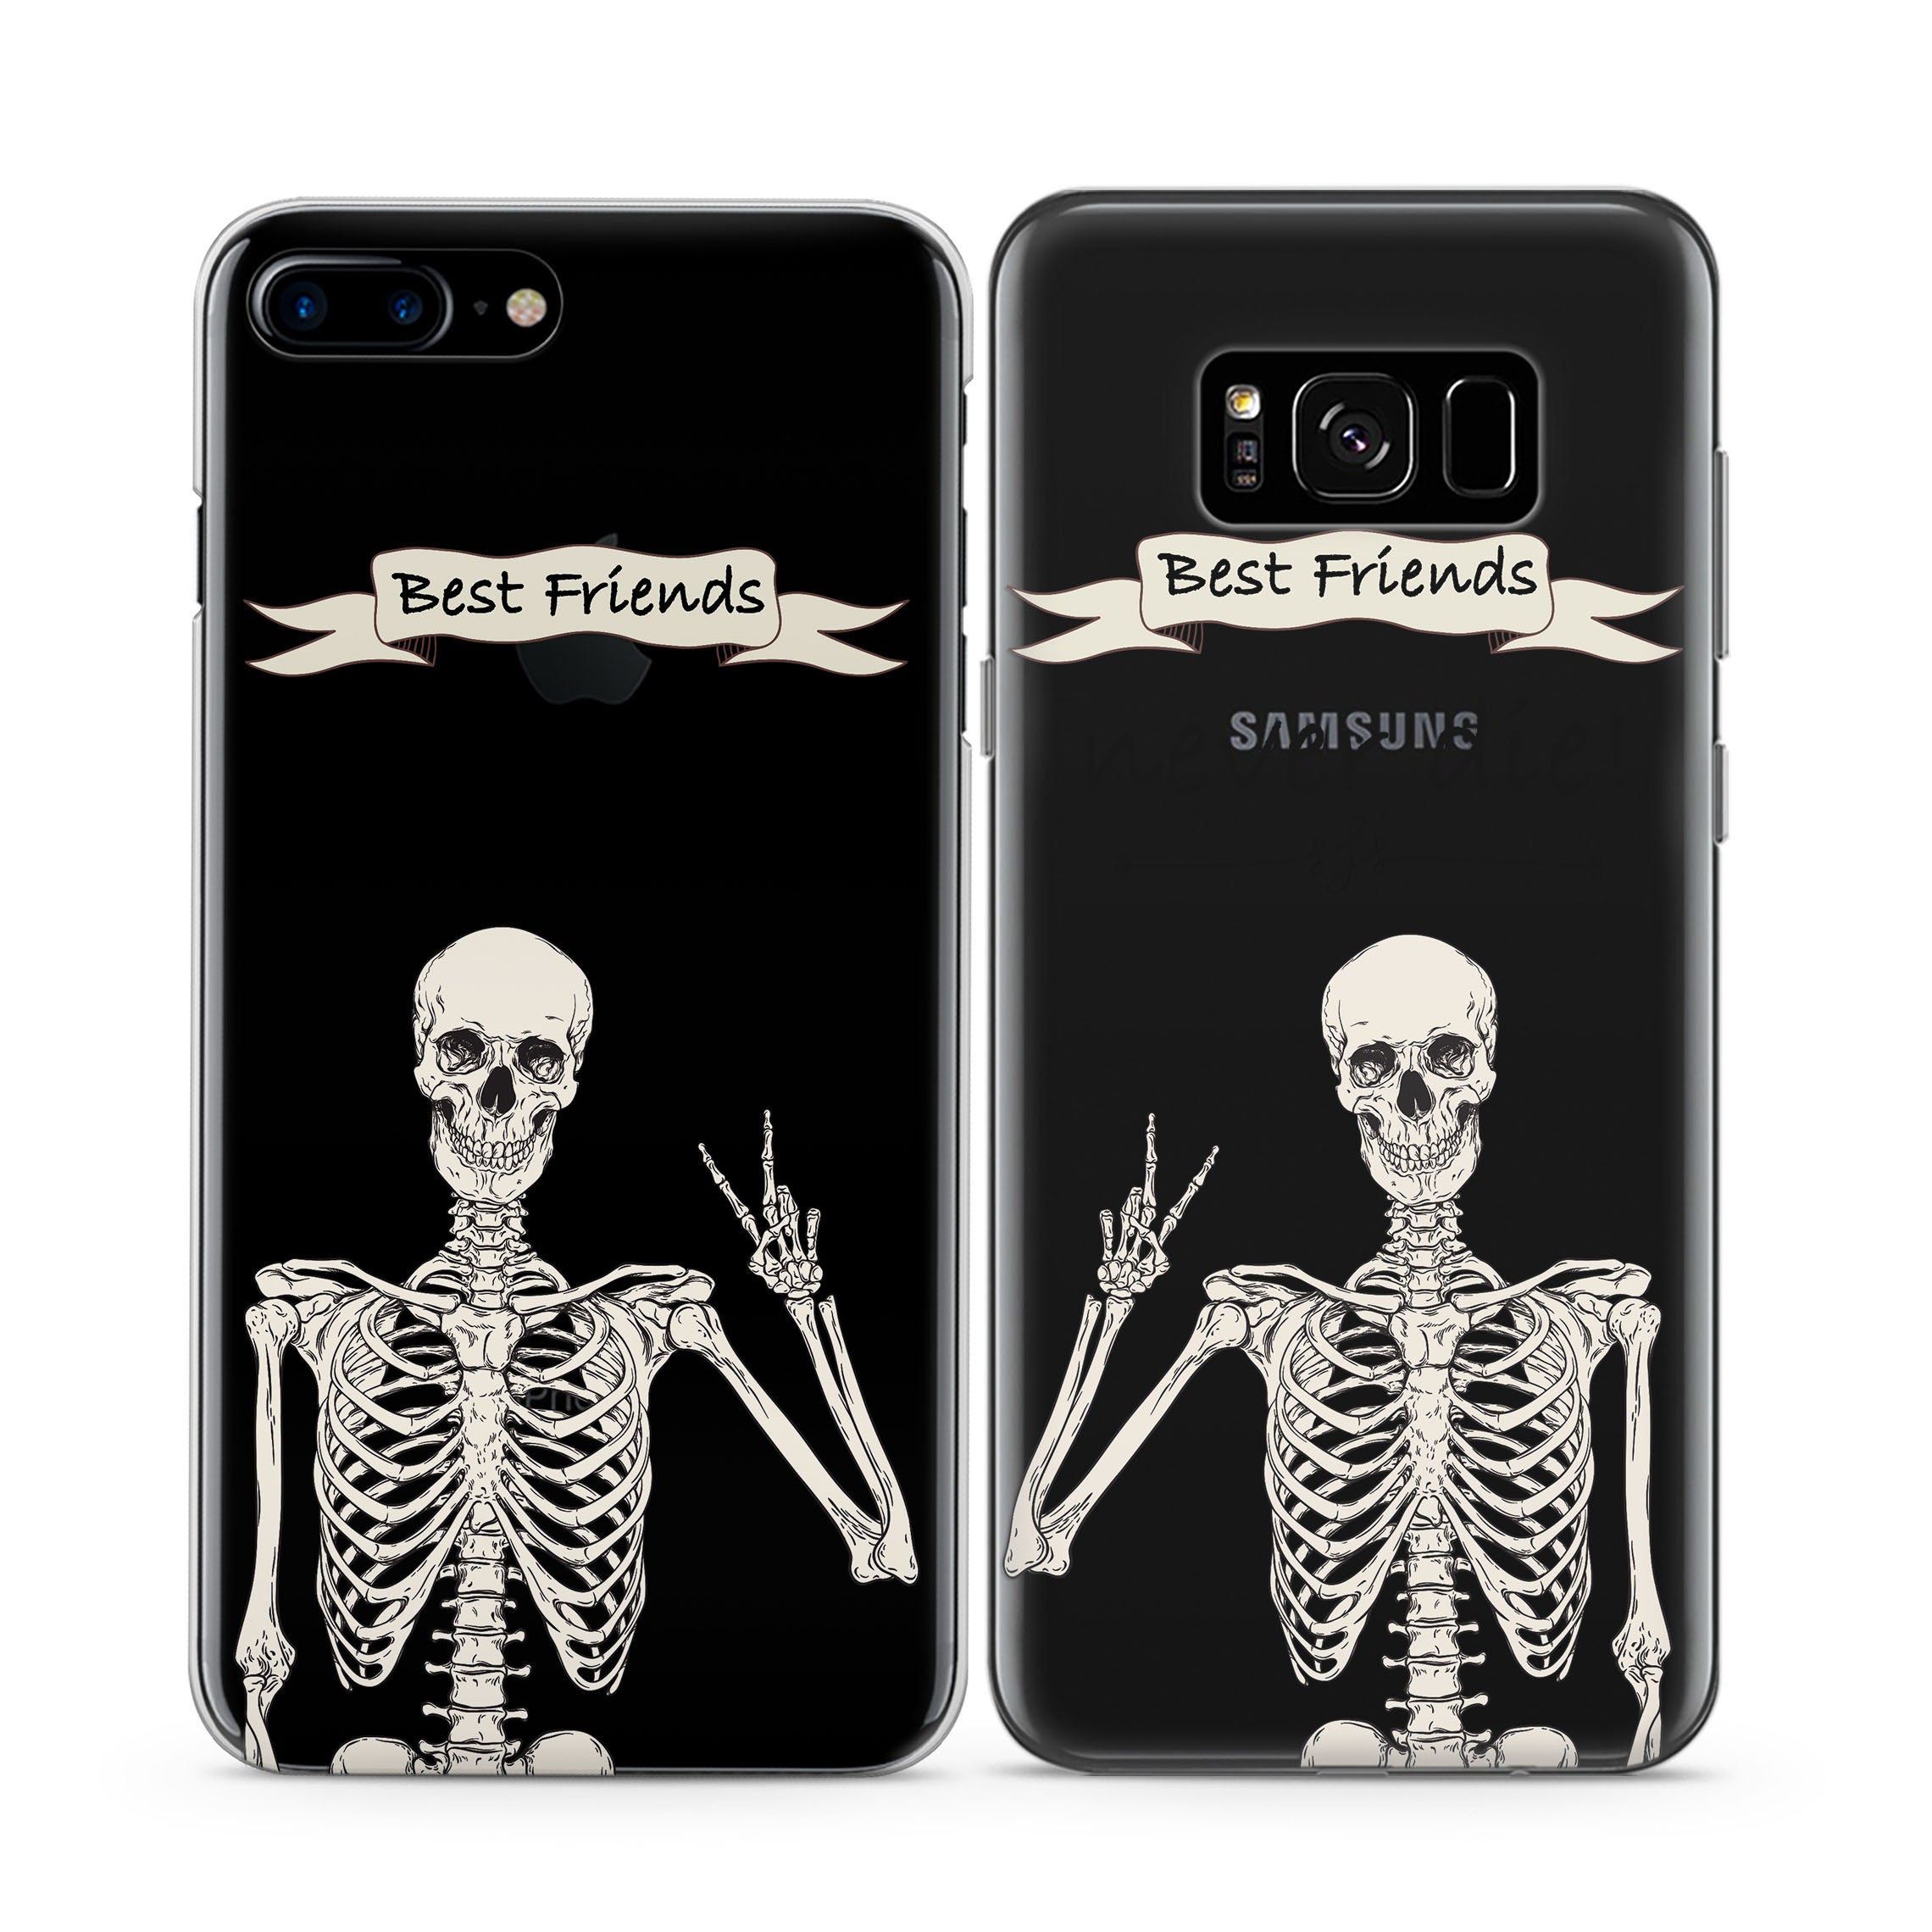 check out 36c6a fed6f Best Friend Case iPhones 7 Plus Case Skeleton Art iPhone 8 Clear Case  iPhone XR Case Cover iPhone 5S Apple iPhone 6S Case SE 10 XS Max 5 X 6